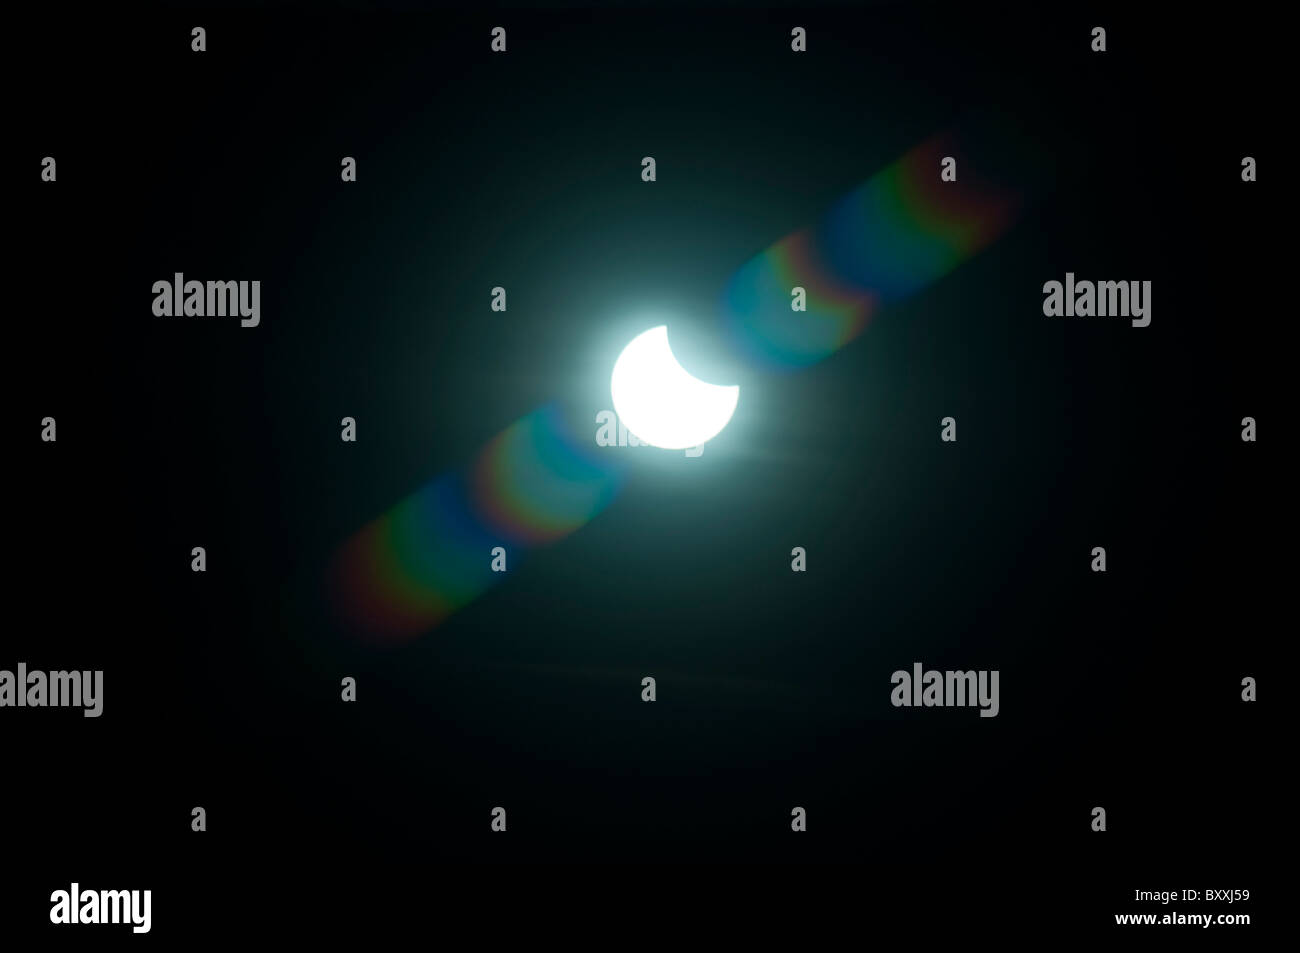 solar eclipse of the 4 january 2011 - Stock Image